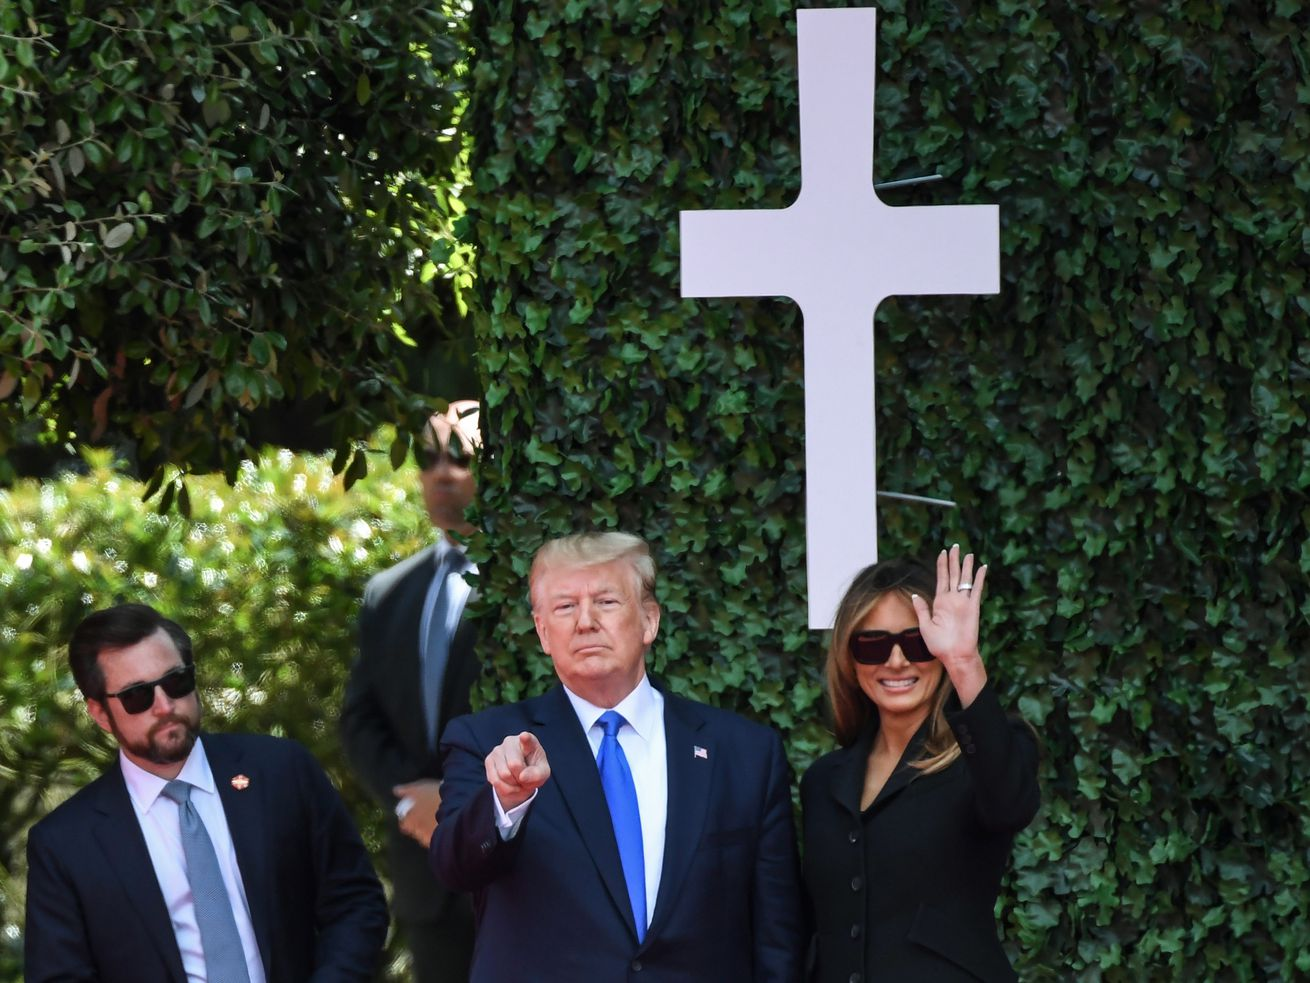 President Donald Trump (C) and first lady Melania Trump attend a ceremony at the Normandy American Cemetery and Memorial in Normandy, France, on June 6, 2019.